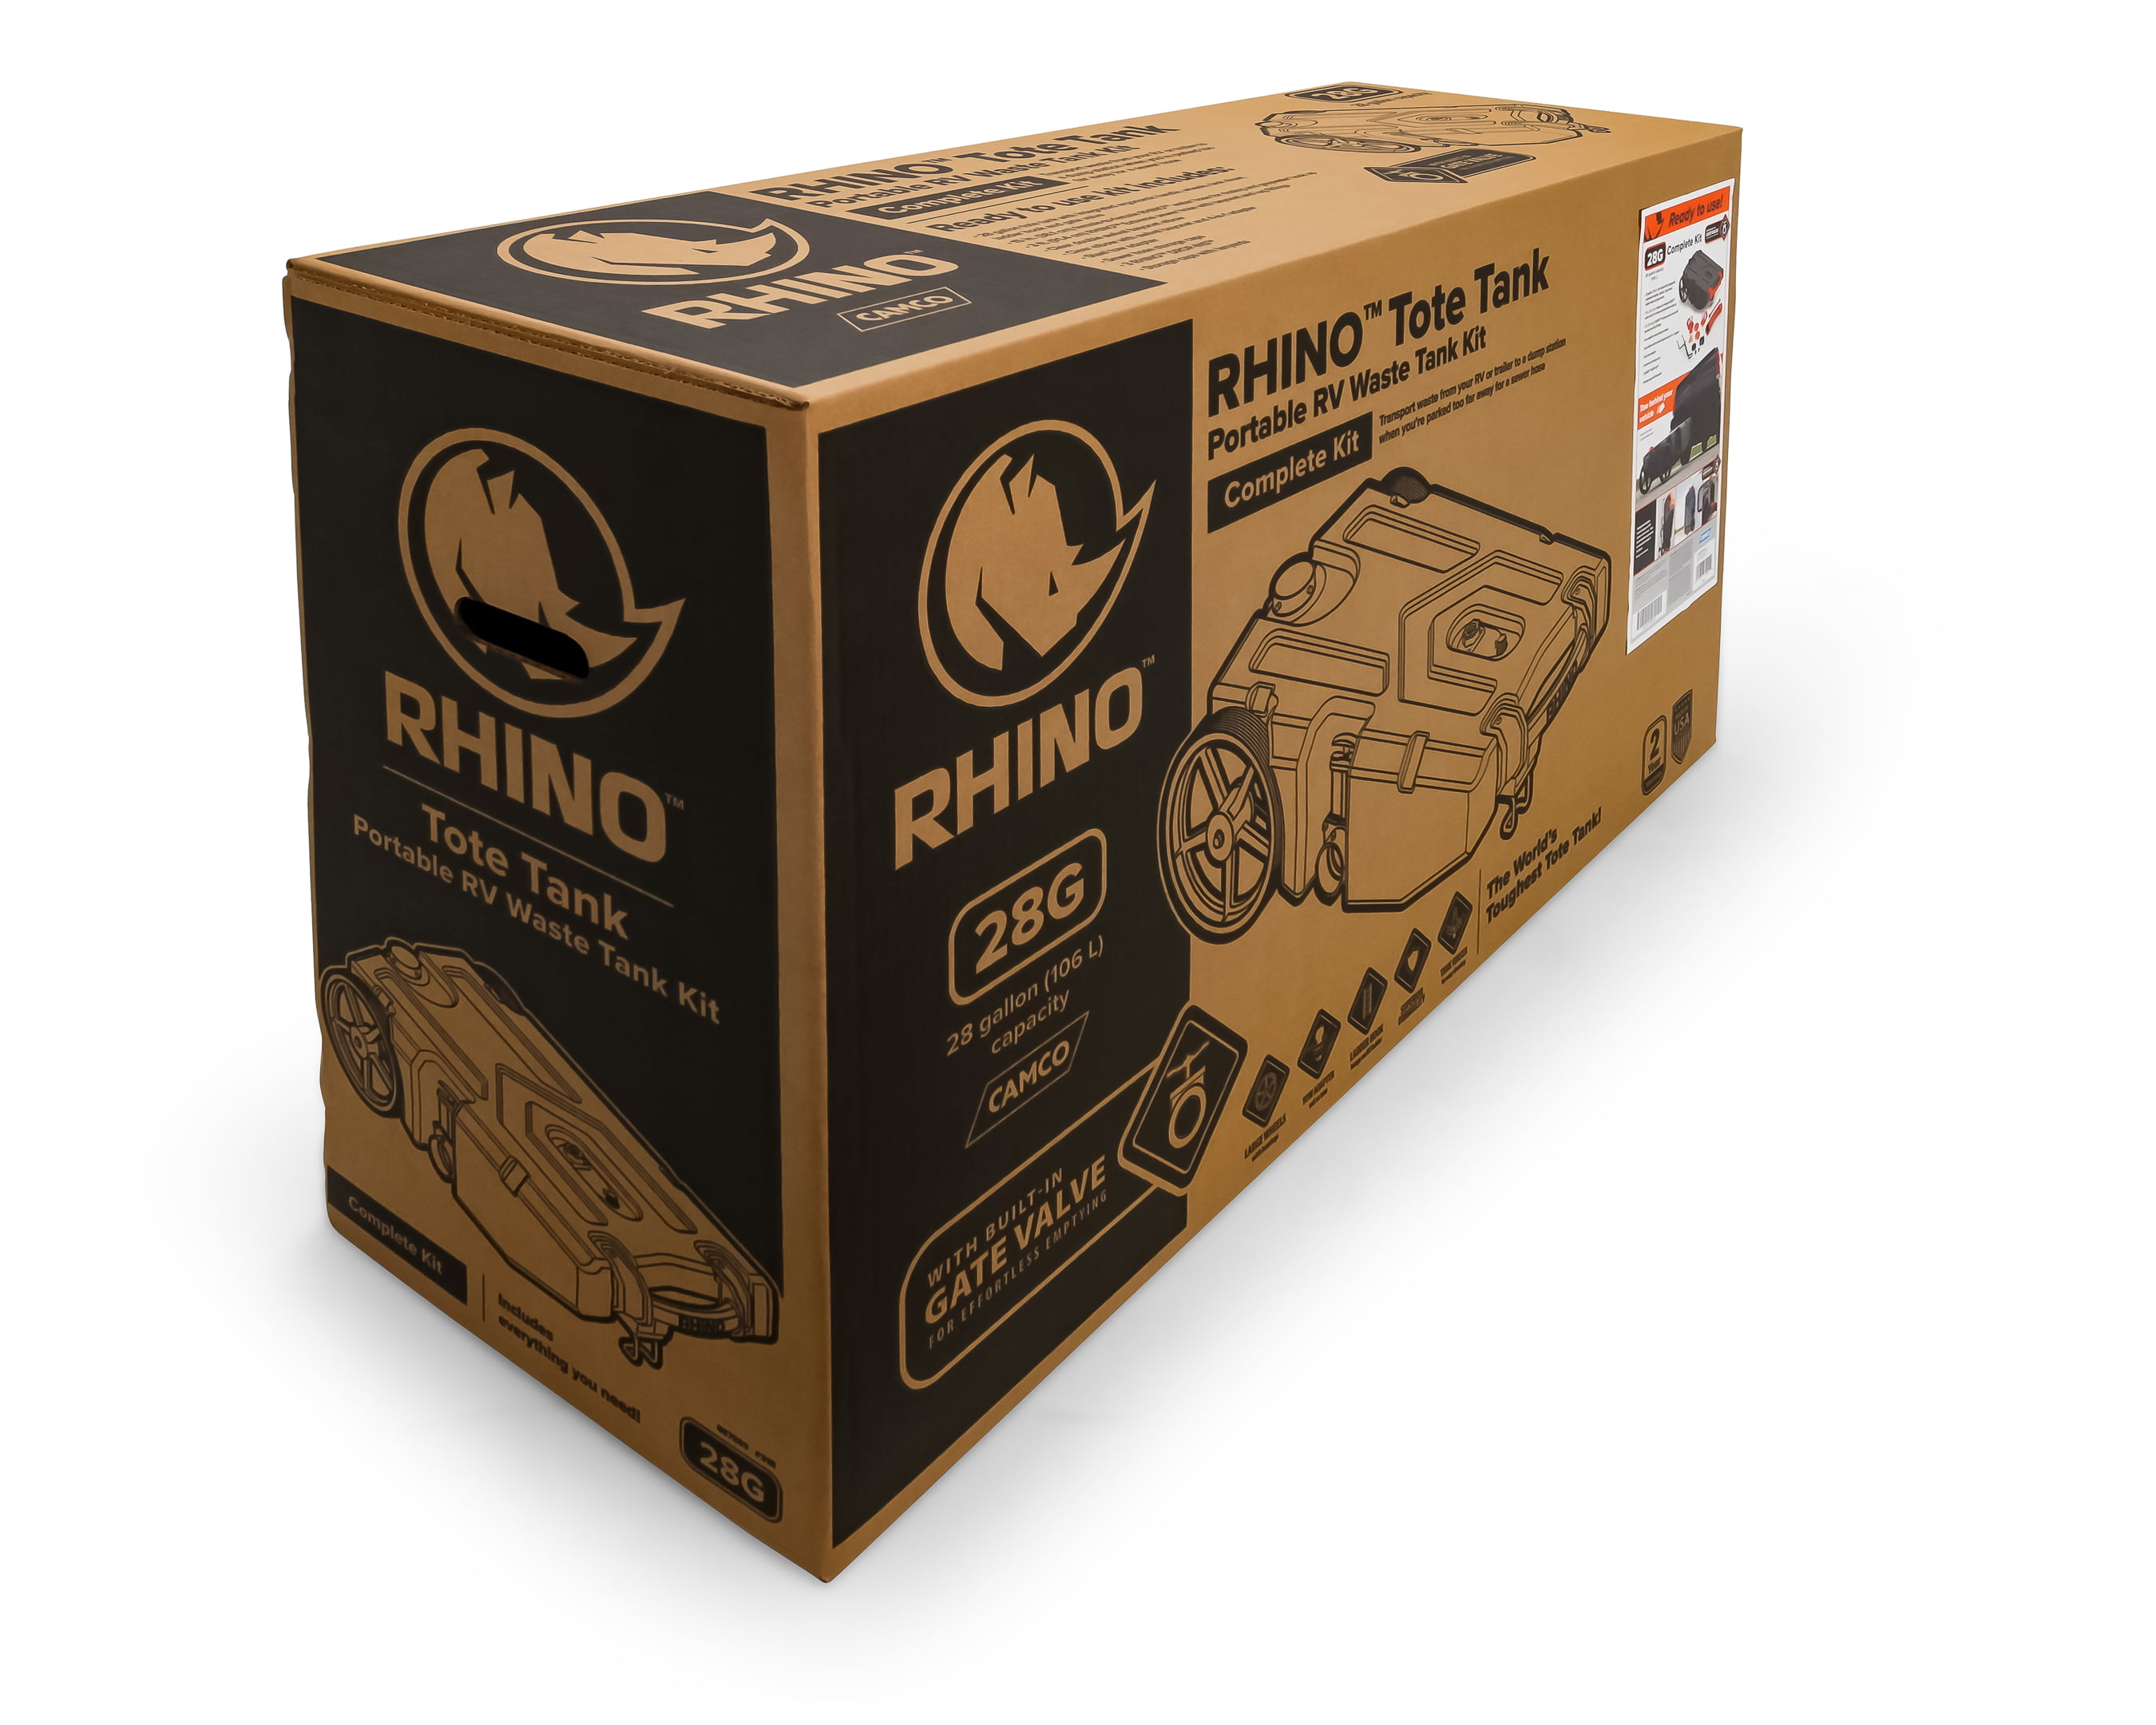 CAMCO 39004 Rhino Portable 28 Gallon RV Waste Tank Holding Hose and Accessories for sale online